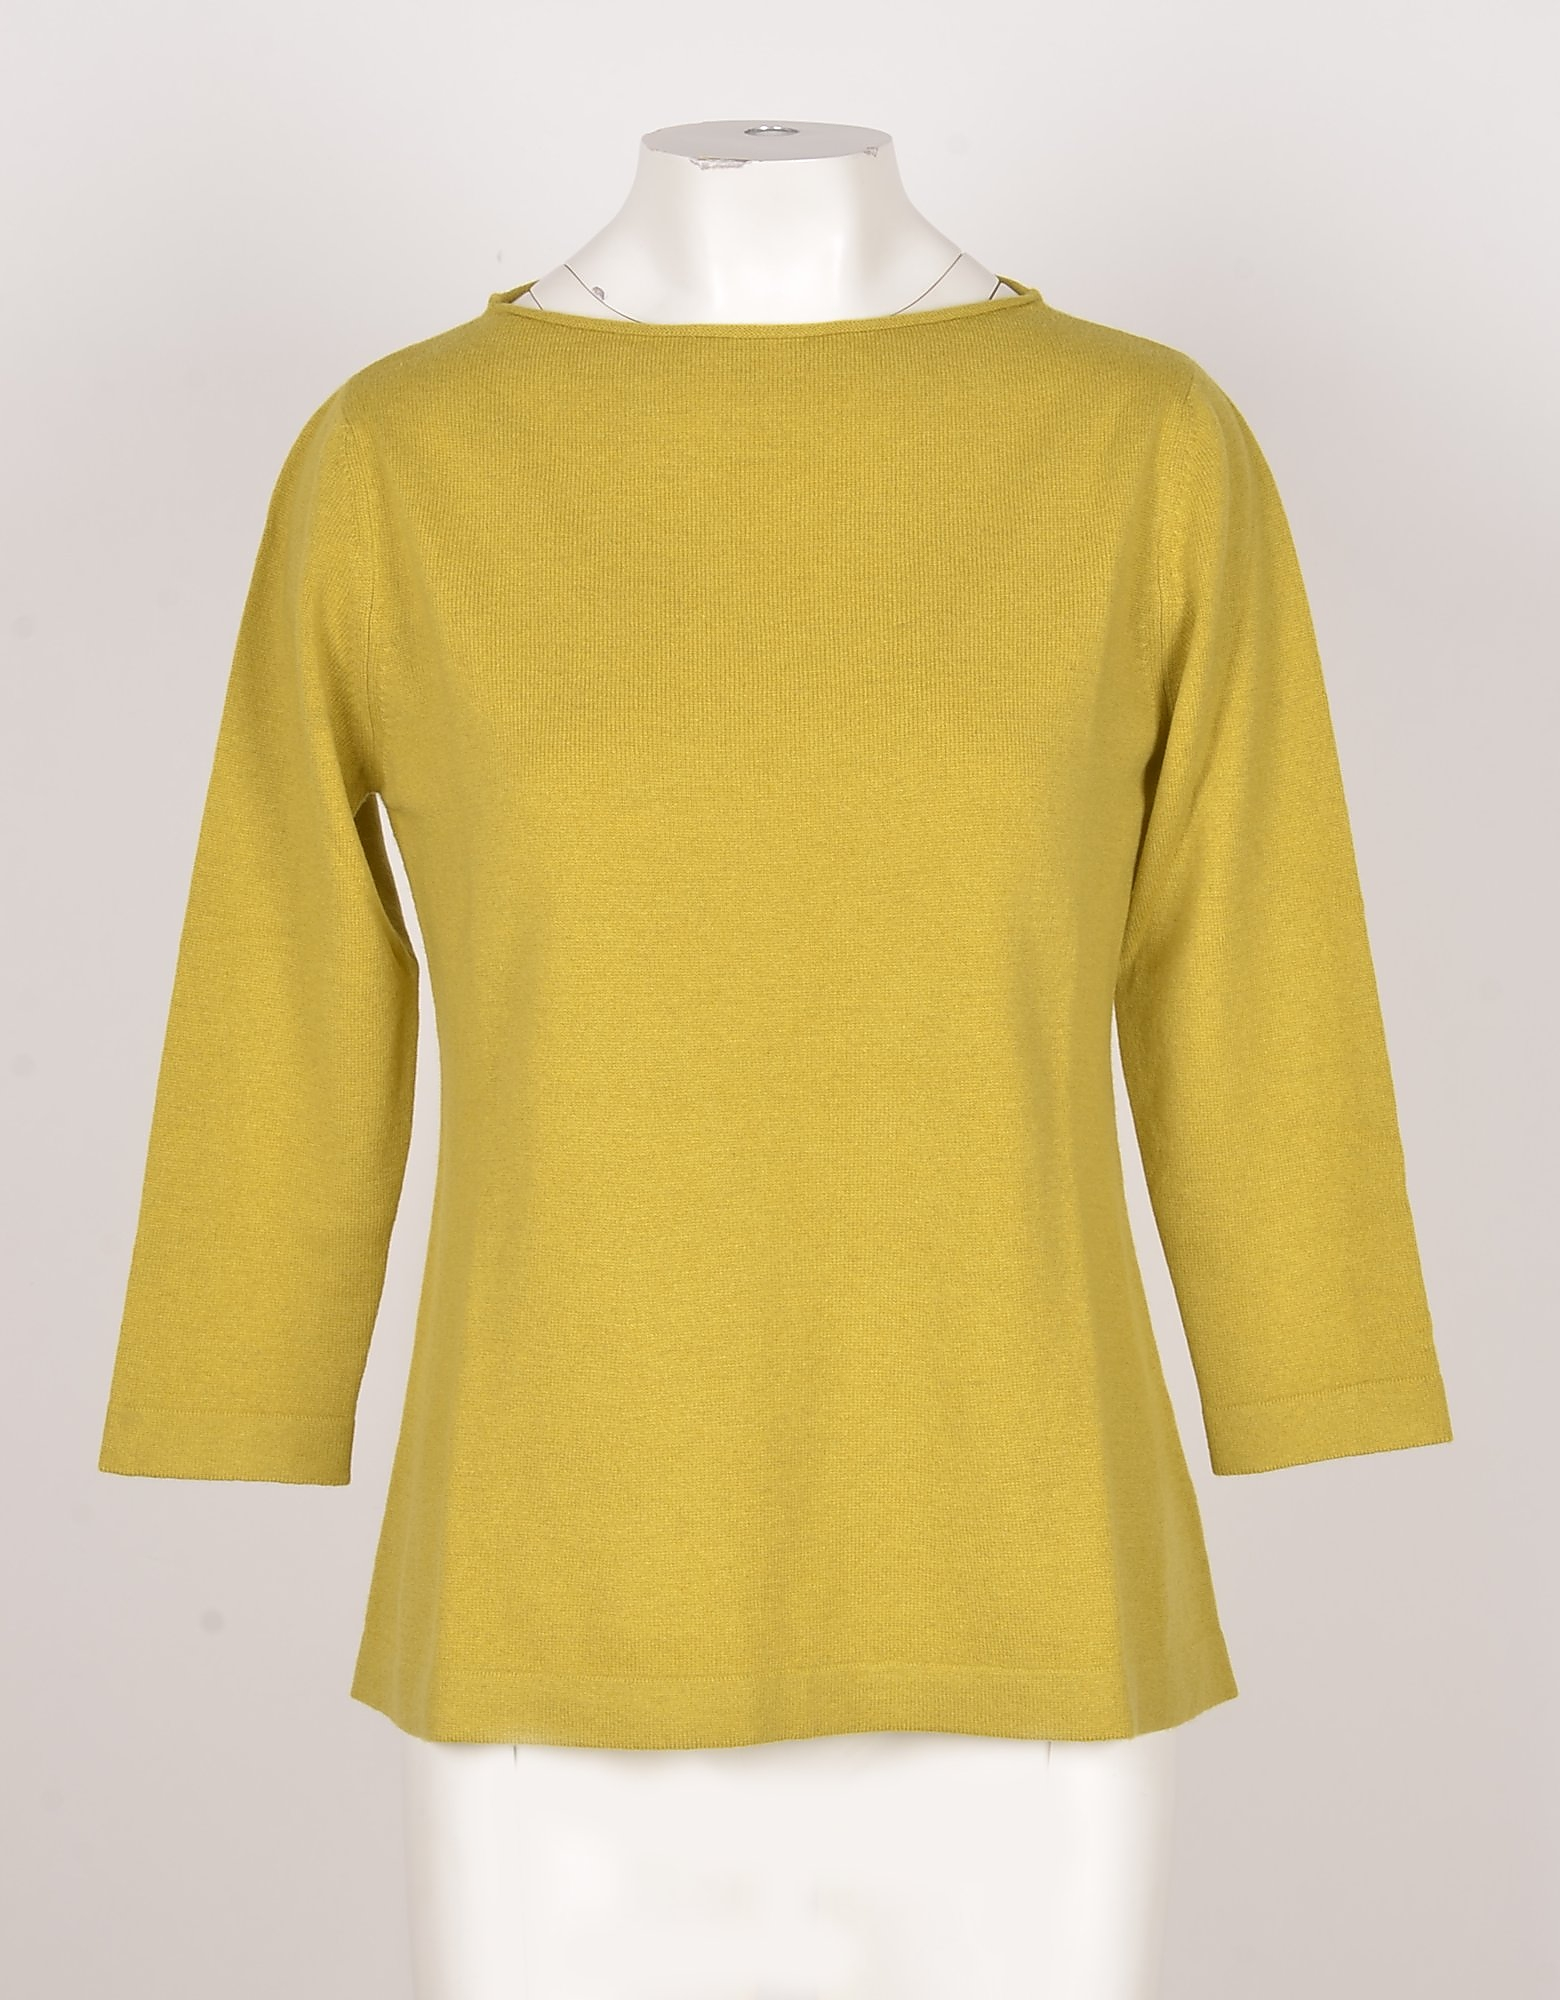 Bruno Manetti Designer Knitwear, Apple Green Wool, Silk and Cashmere Women's Sweater